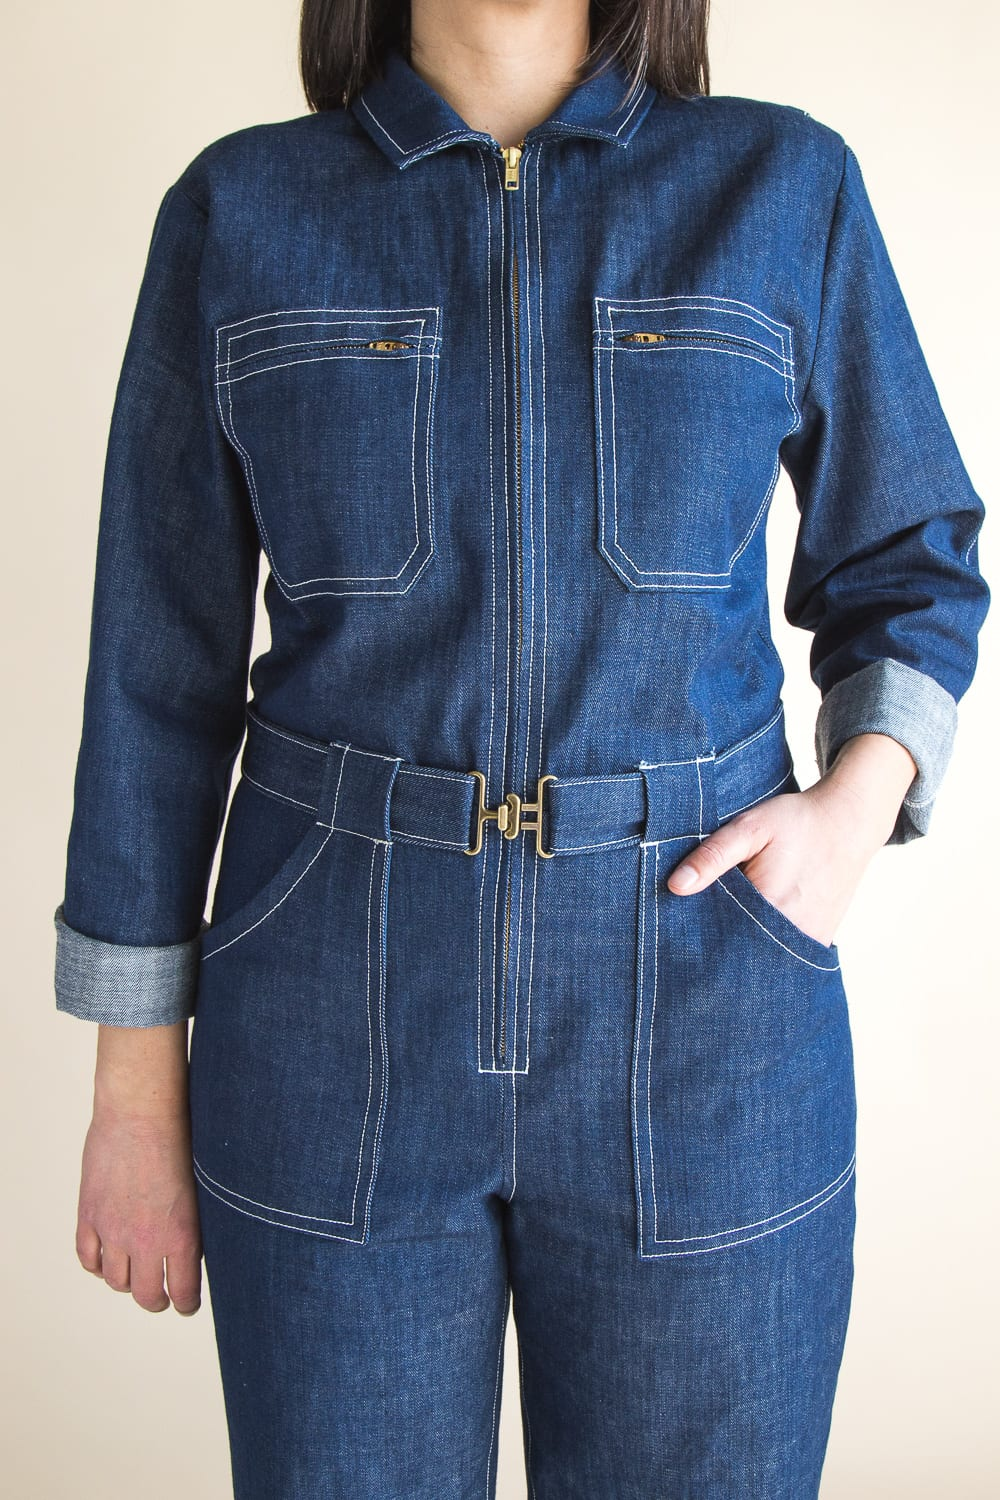 Blanca Flight Suite Pattern // Boiler Suit sewing pattern // Available from Closet Case Patterns